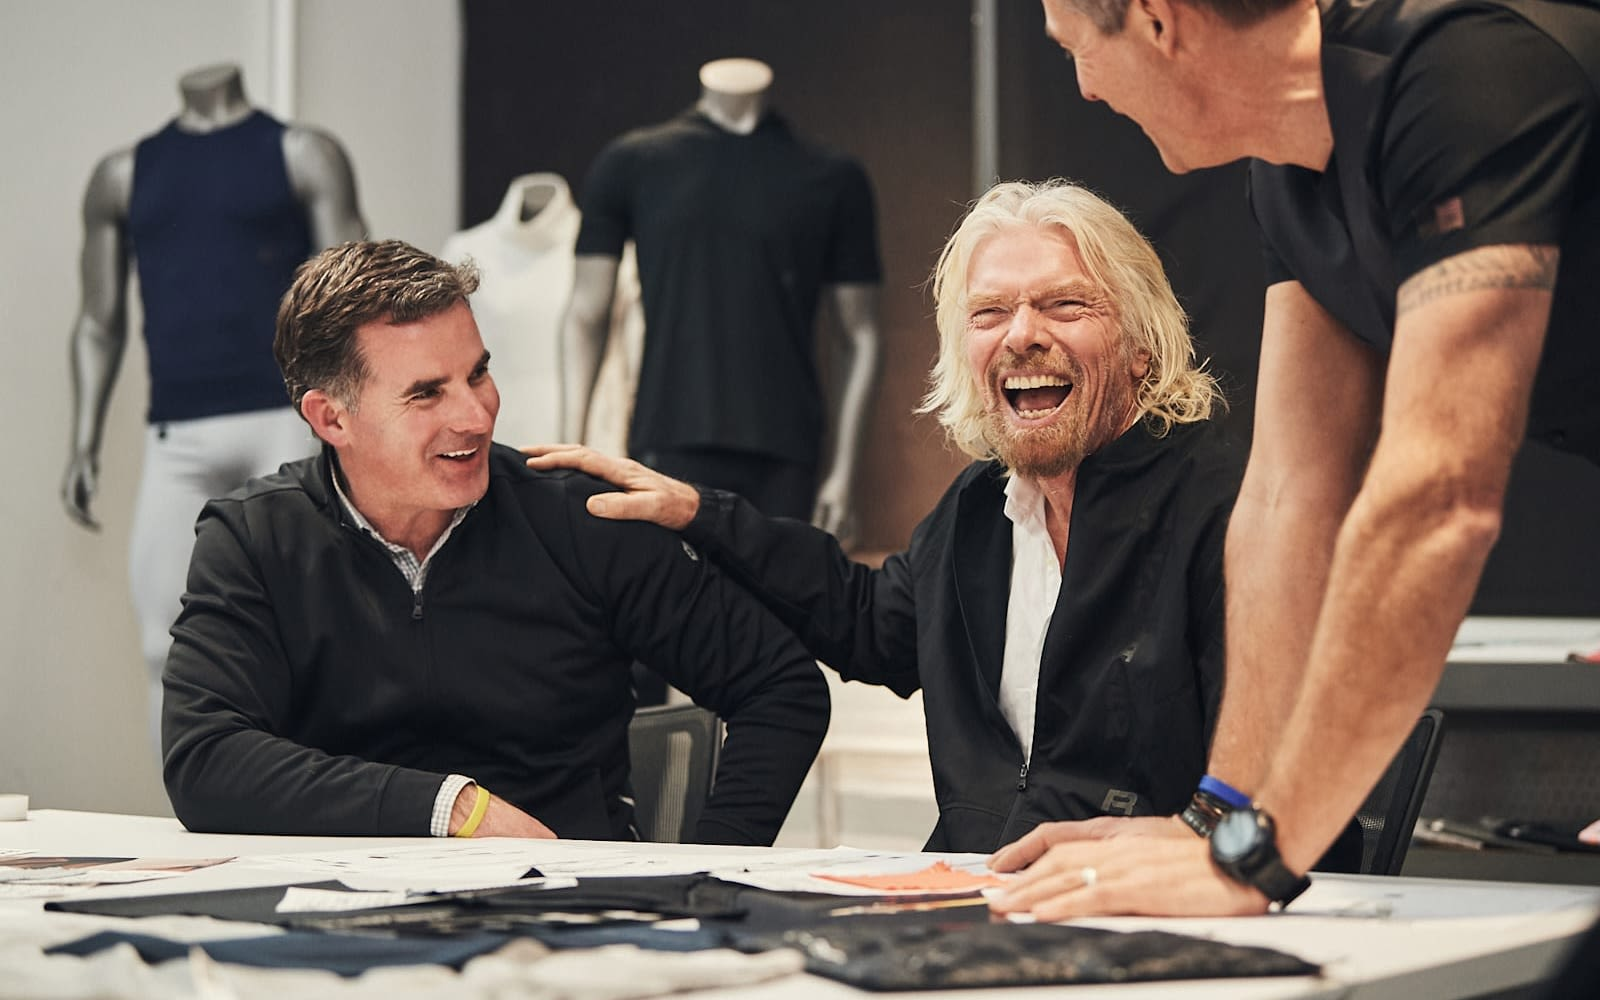 Richard Branson with Kevin Plank during the design process for Virgin Galactic's spacesuits